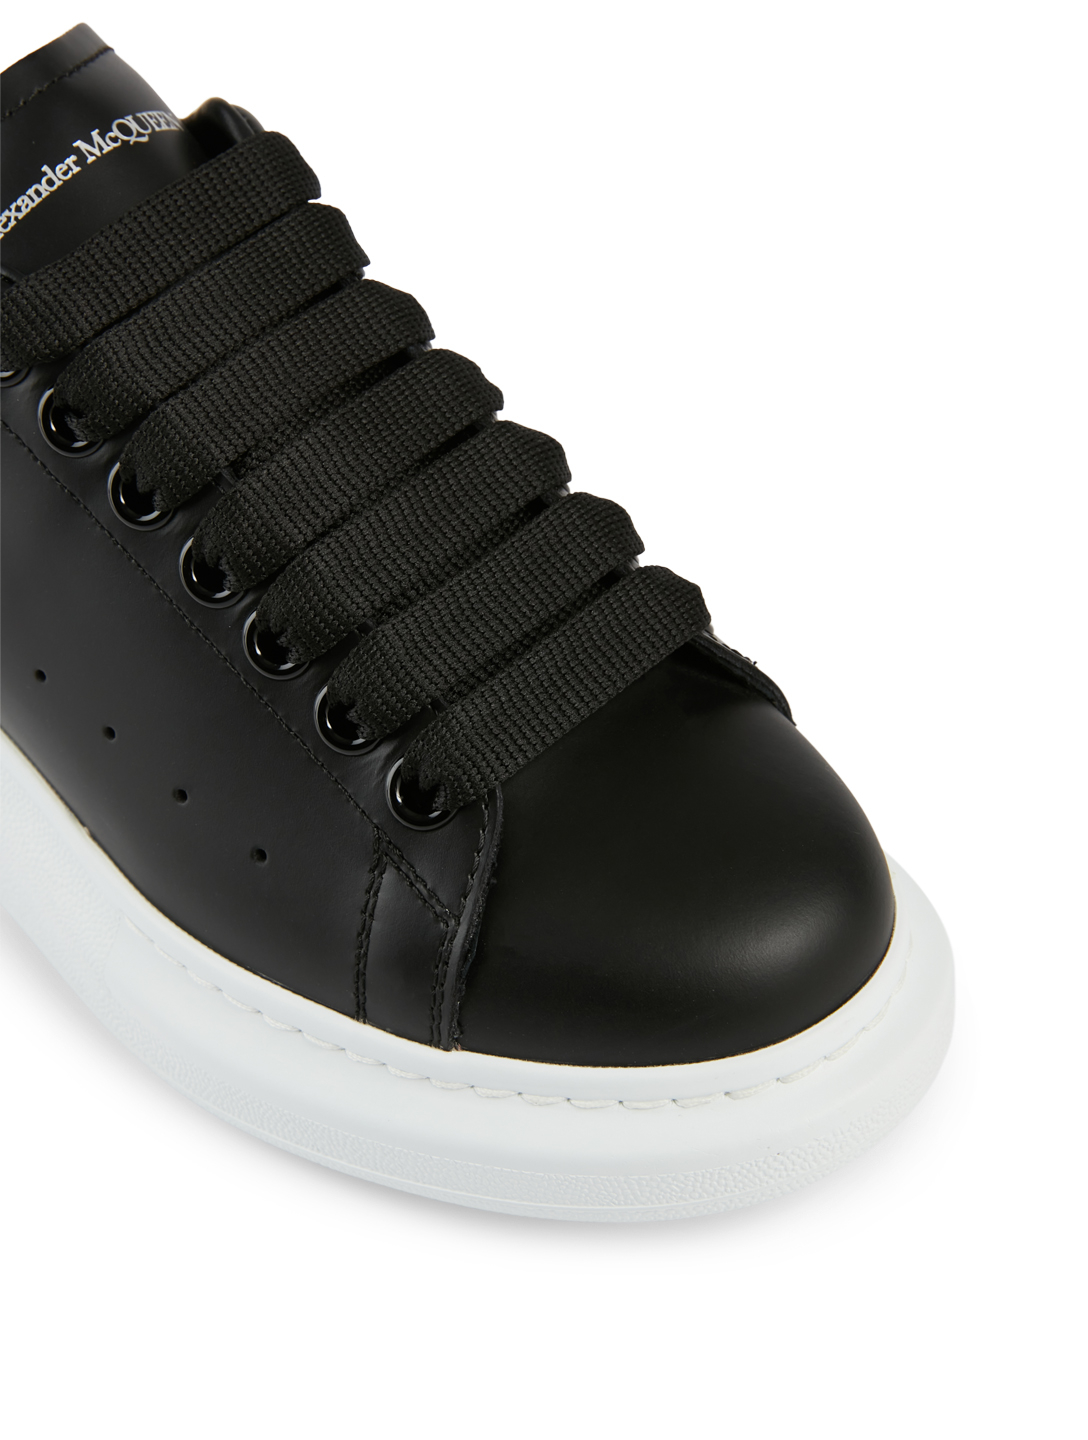 ALEXANDER MCQUEEN Oversized Leather Sneakers With Heart Tab Women's Black